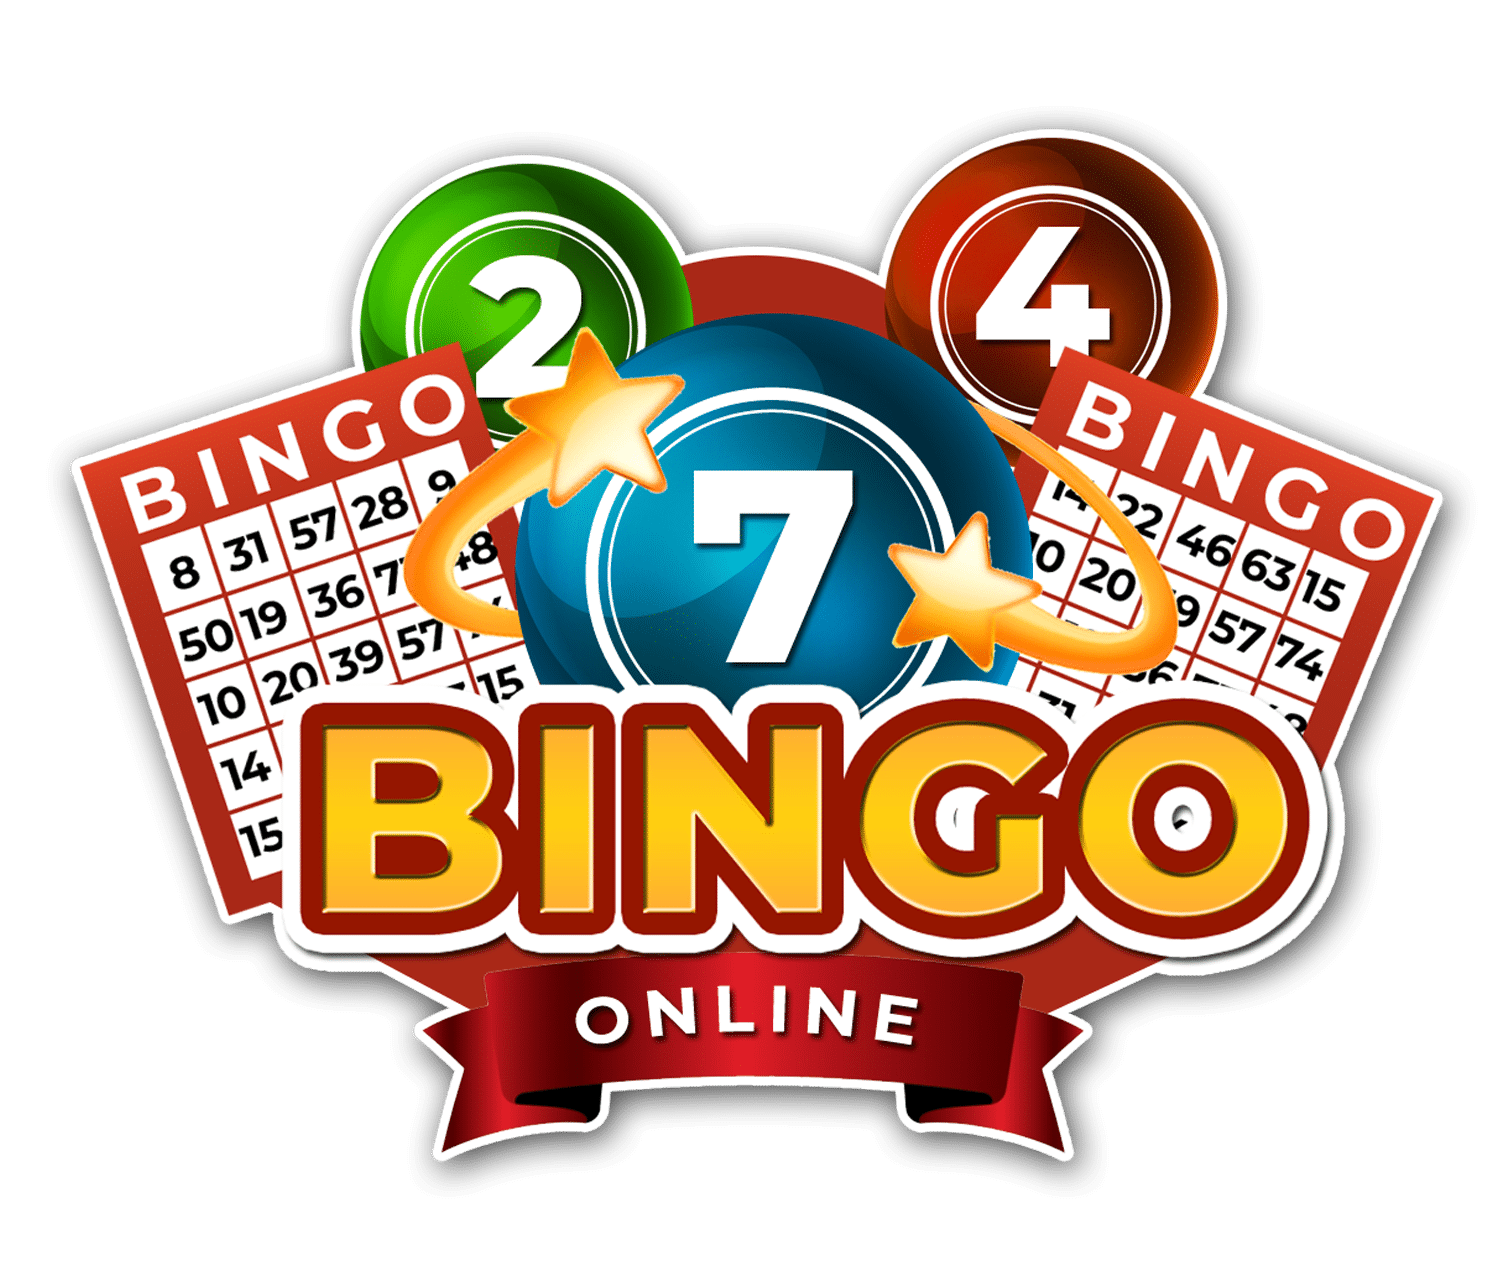 How did Online Bingo Reinvent the Game